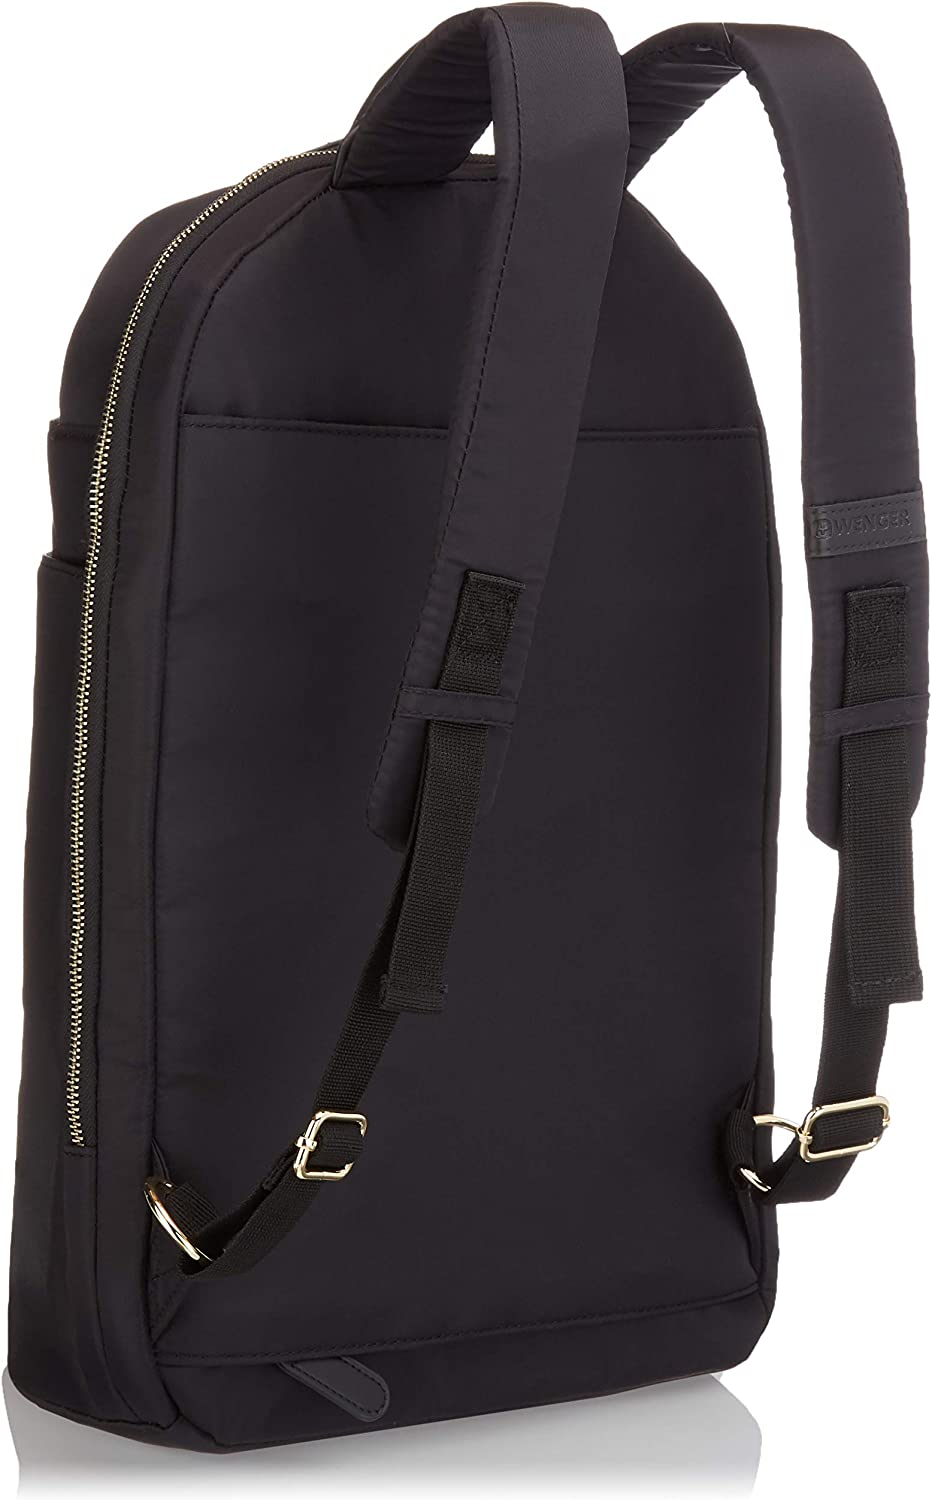 Wenger Luggage Alexa 16 Women s Laptop Backpack, Black, One Size